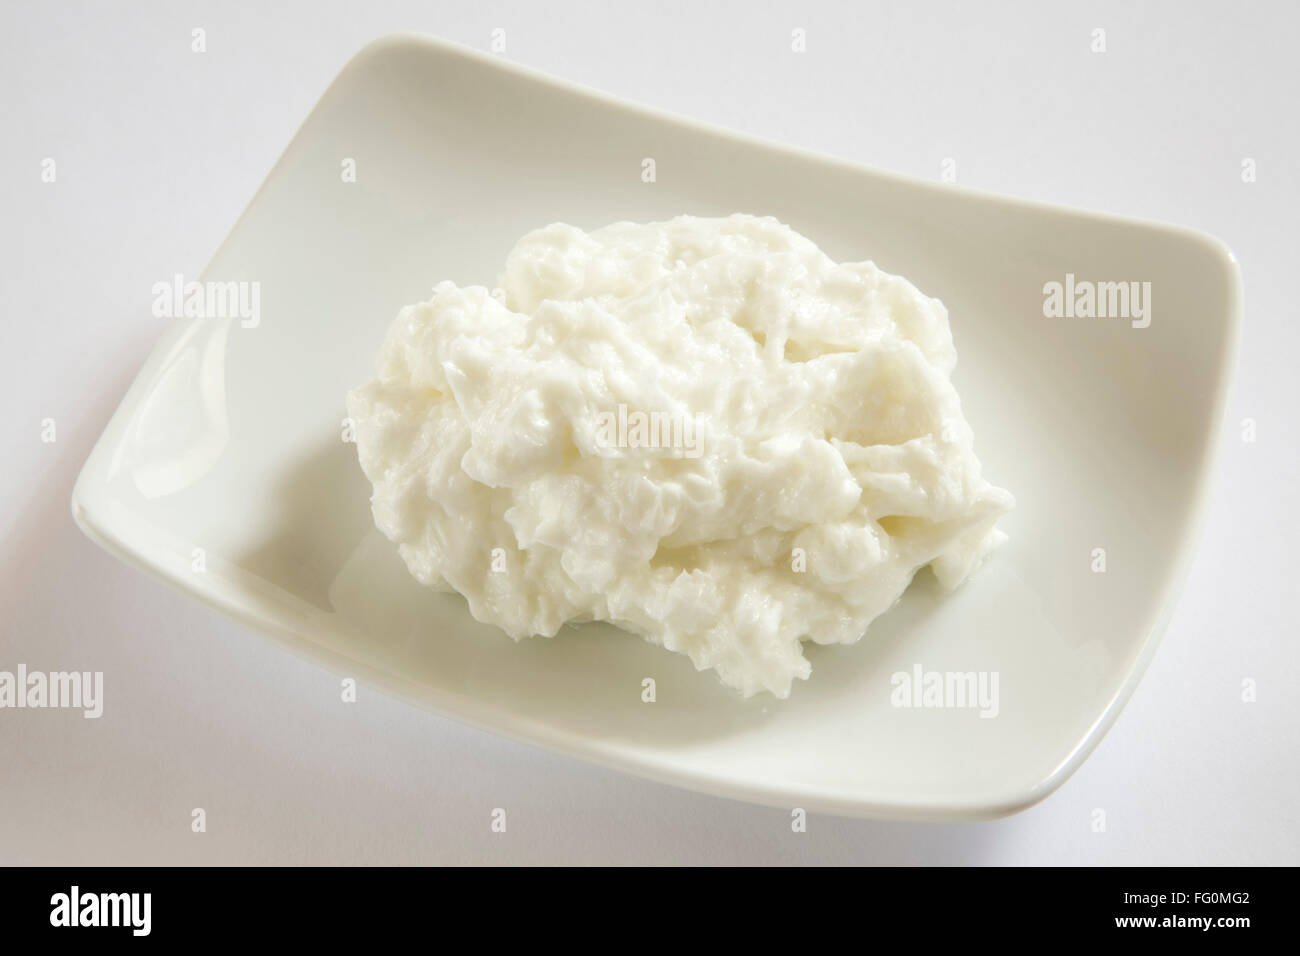 Butter made from full cream milk into yogurt home or dairy product in plate - Stock Image